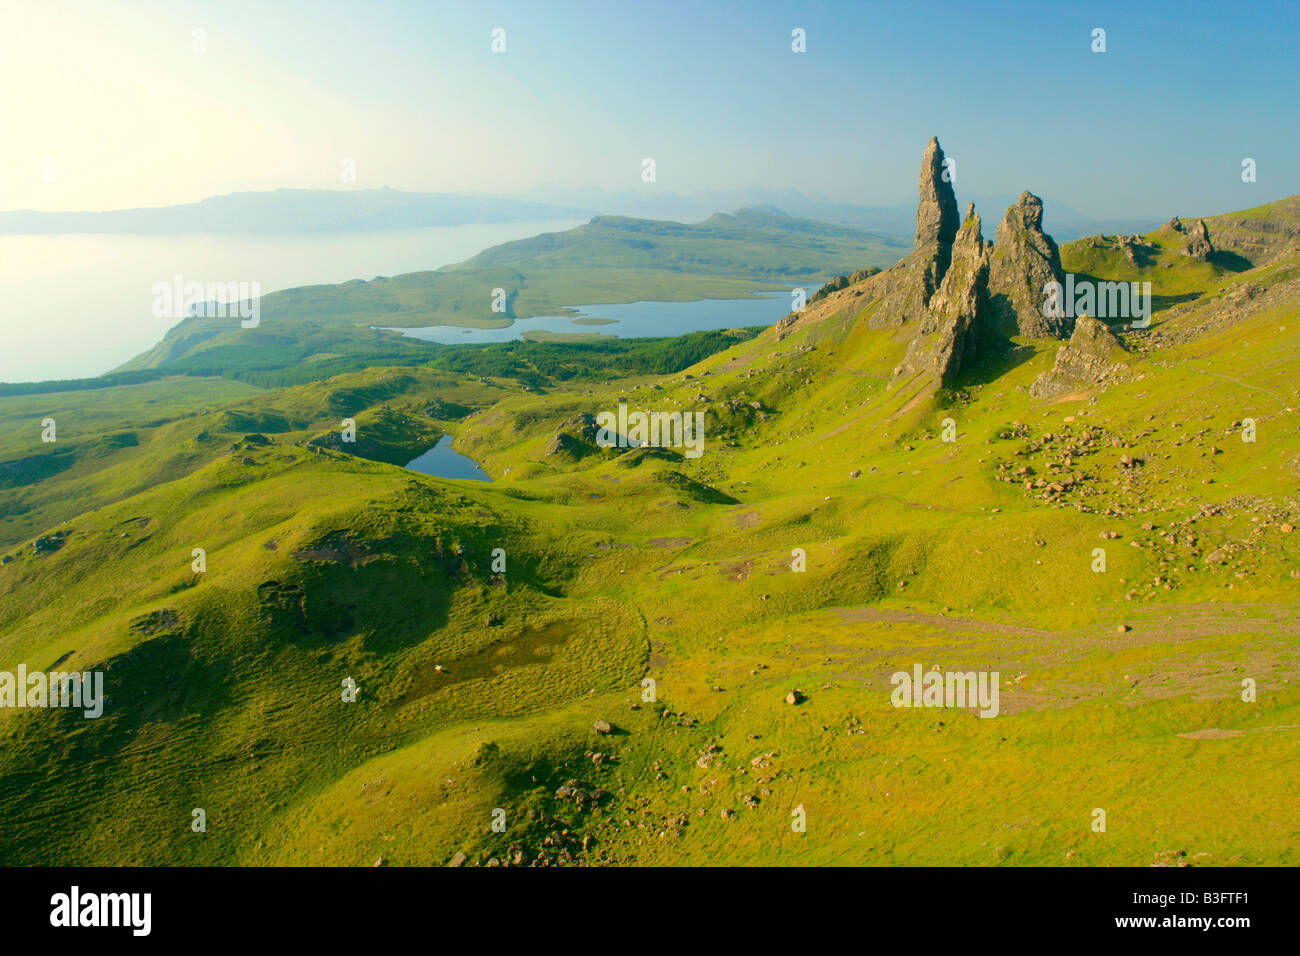 Mountain scenery rolling green slopes and bizarre rock formation Old Man of Storr seen from above Stock Photo